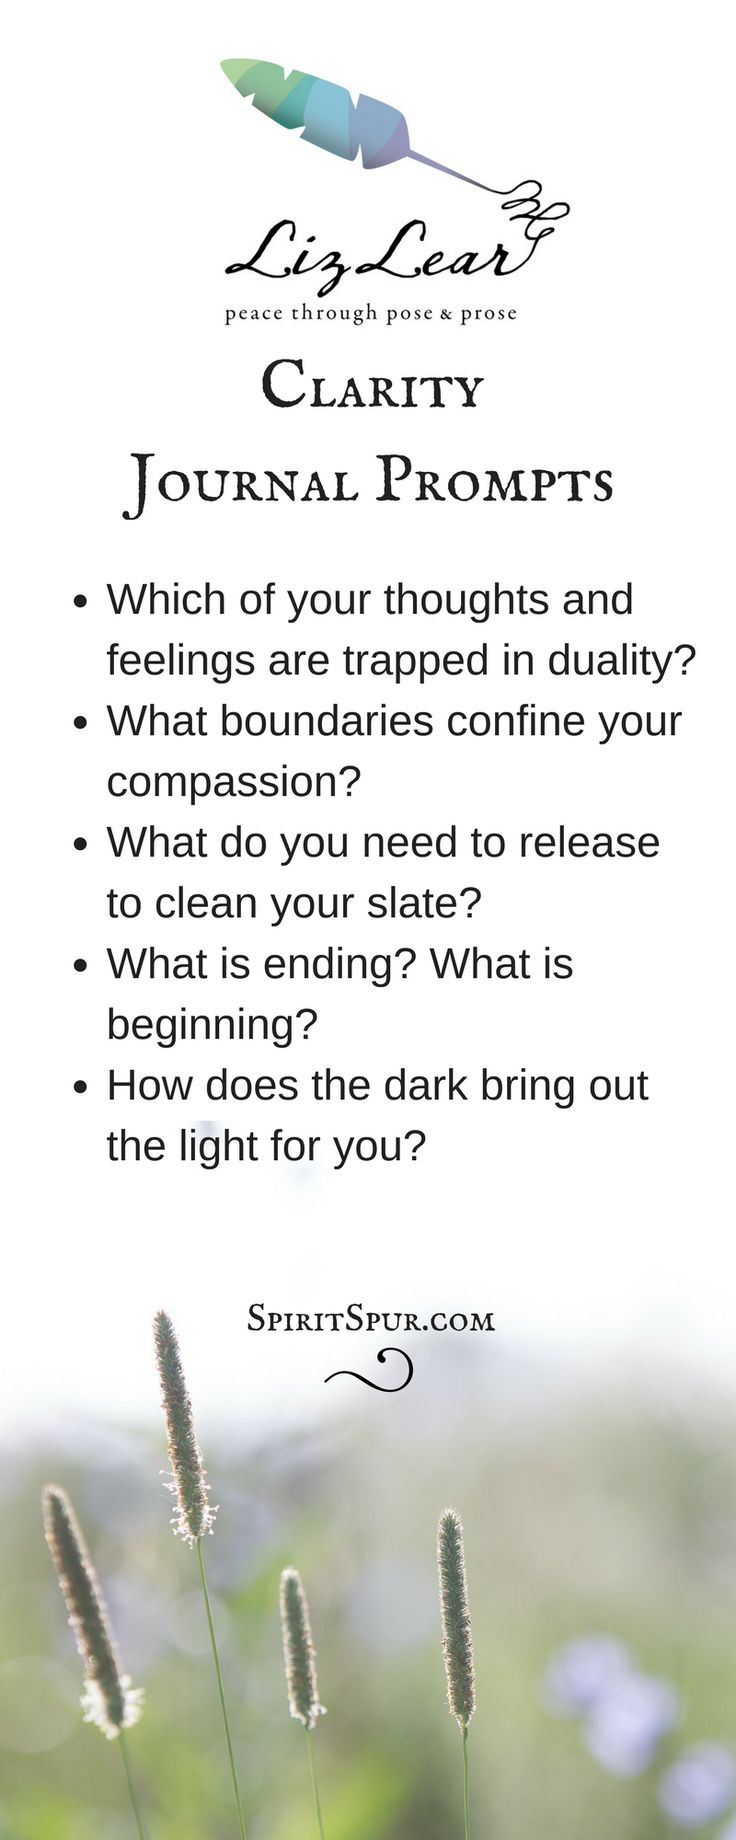 Journal prompts promote clarity | yoga journaling | yoga-inspired journal prompts from Liz Lear | free Cultivate Contentment Guide with 20 peace prompts